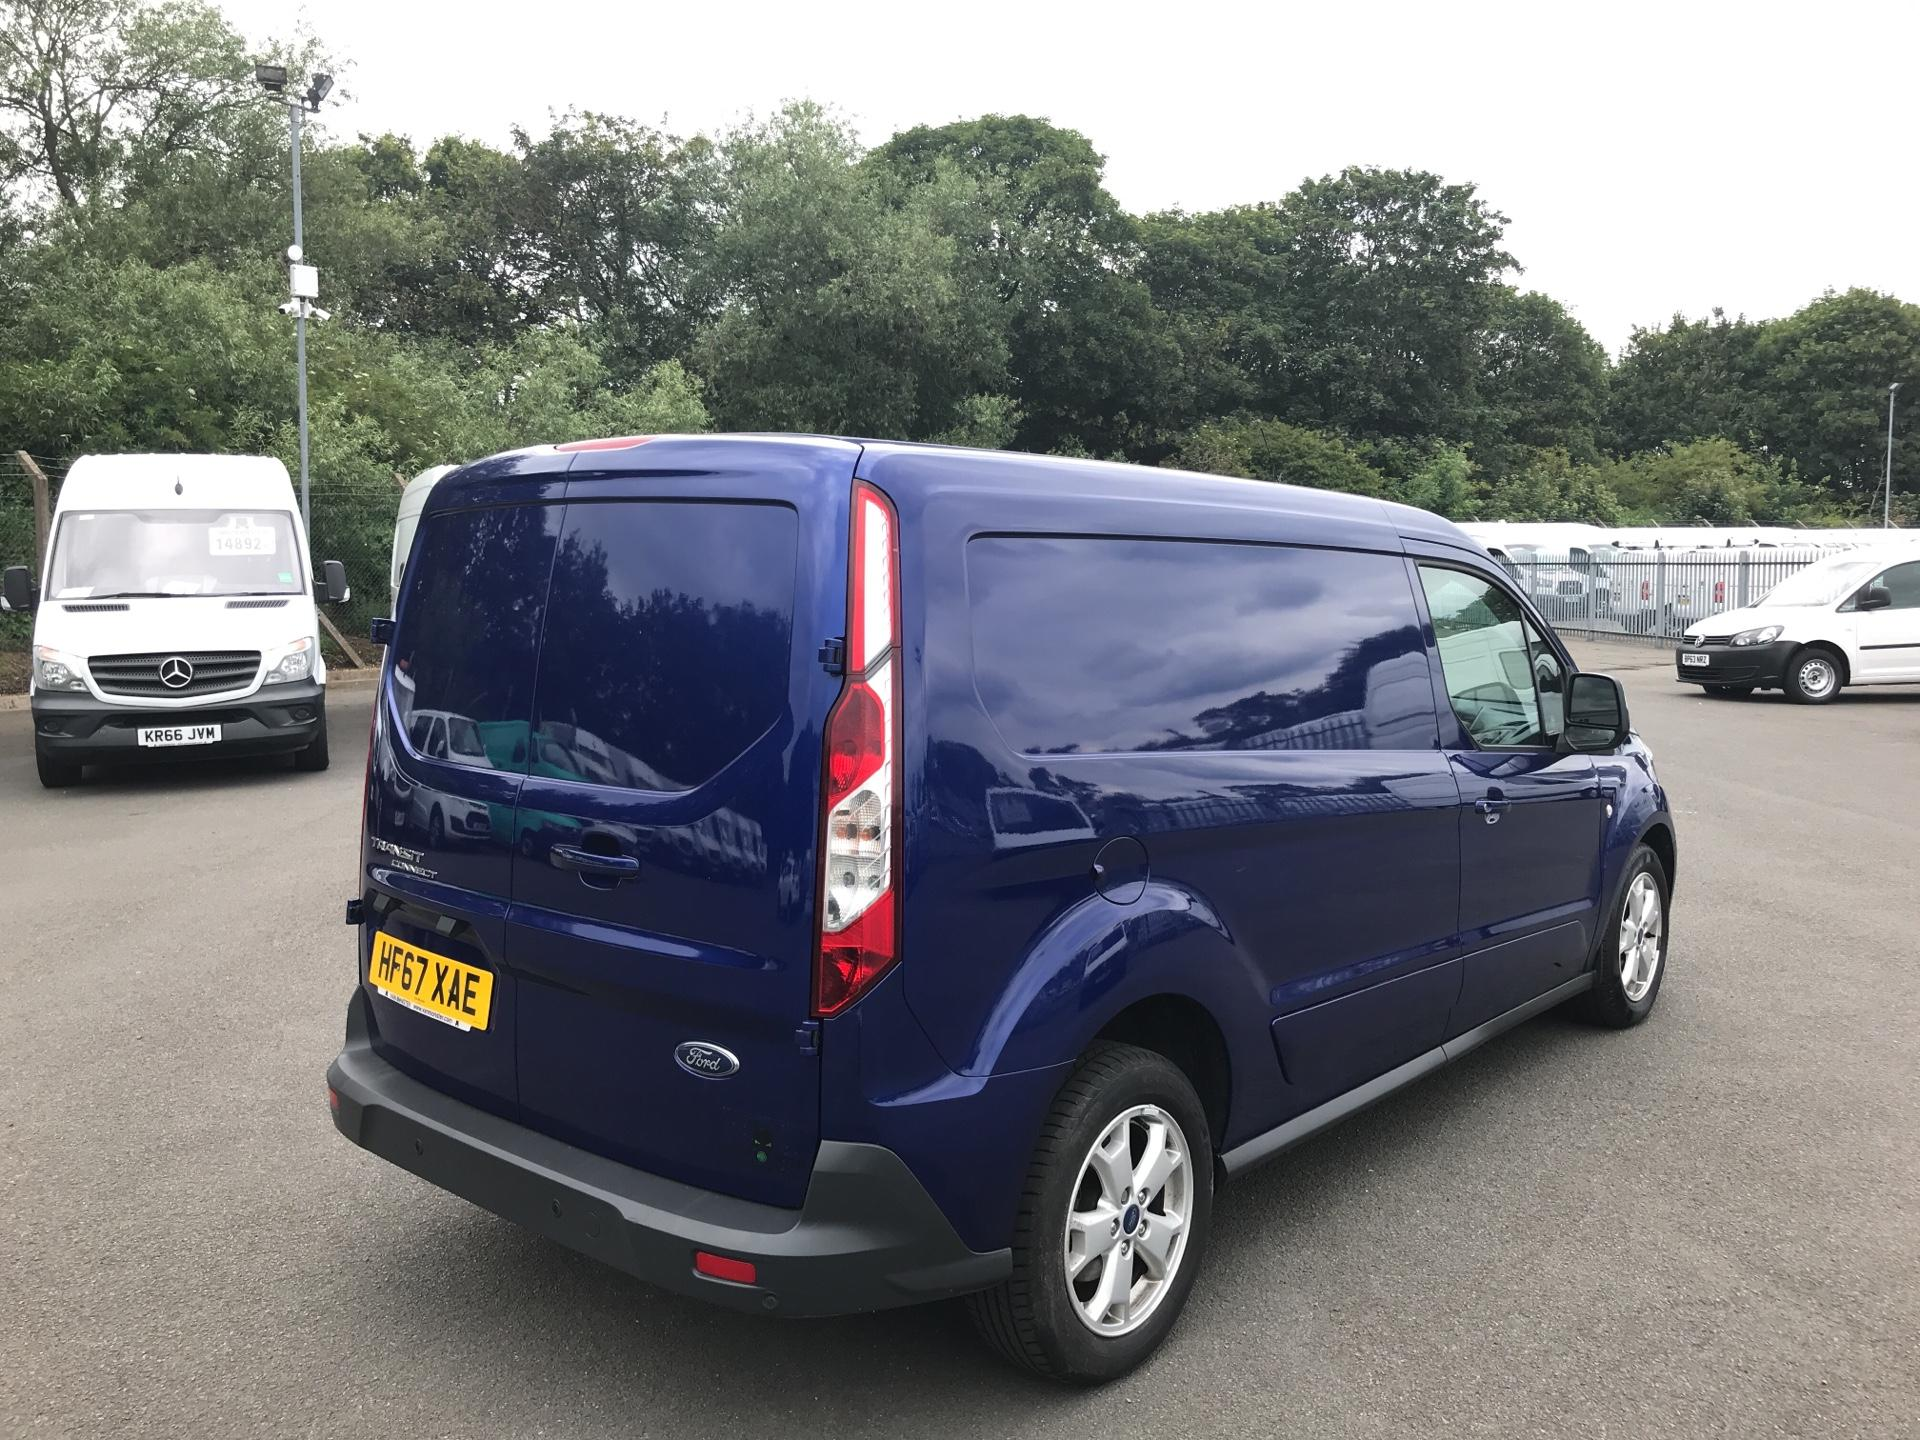 2017 Ford Transit Connect 1.5 TDCI 120PS LIMITED VAN EURO 6 (HF67XAE) Image 3